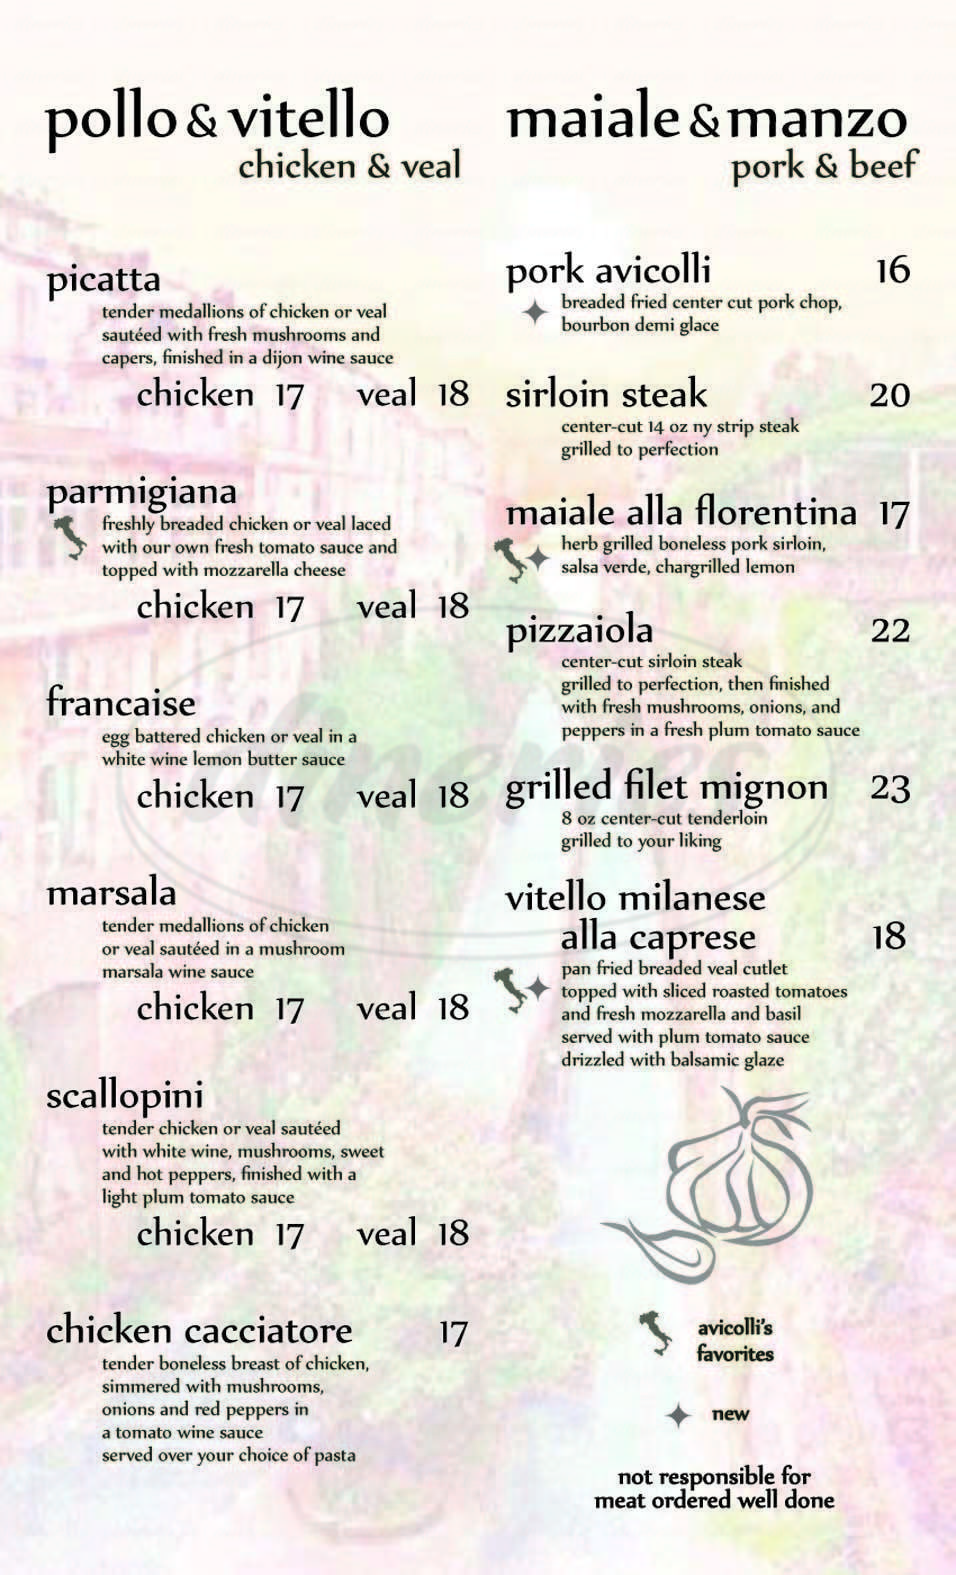 menu for Avicolli's Pizza Restaurant